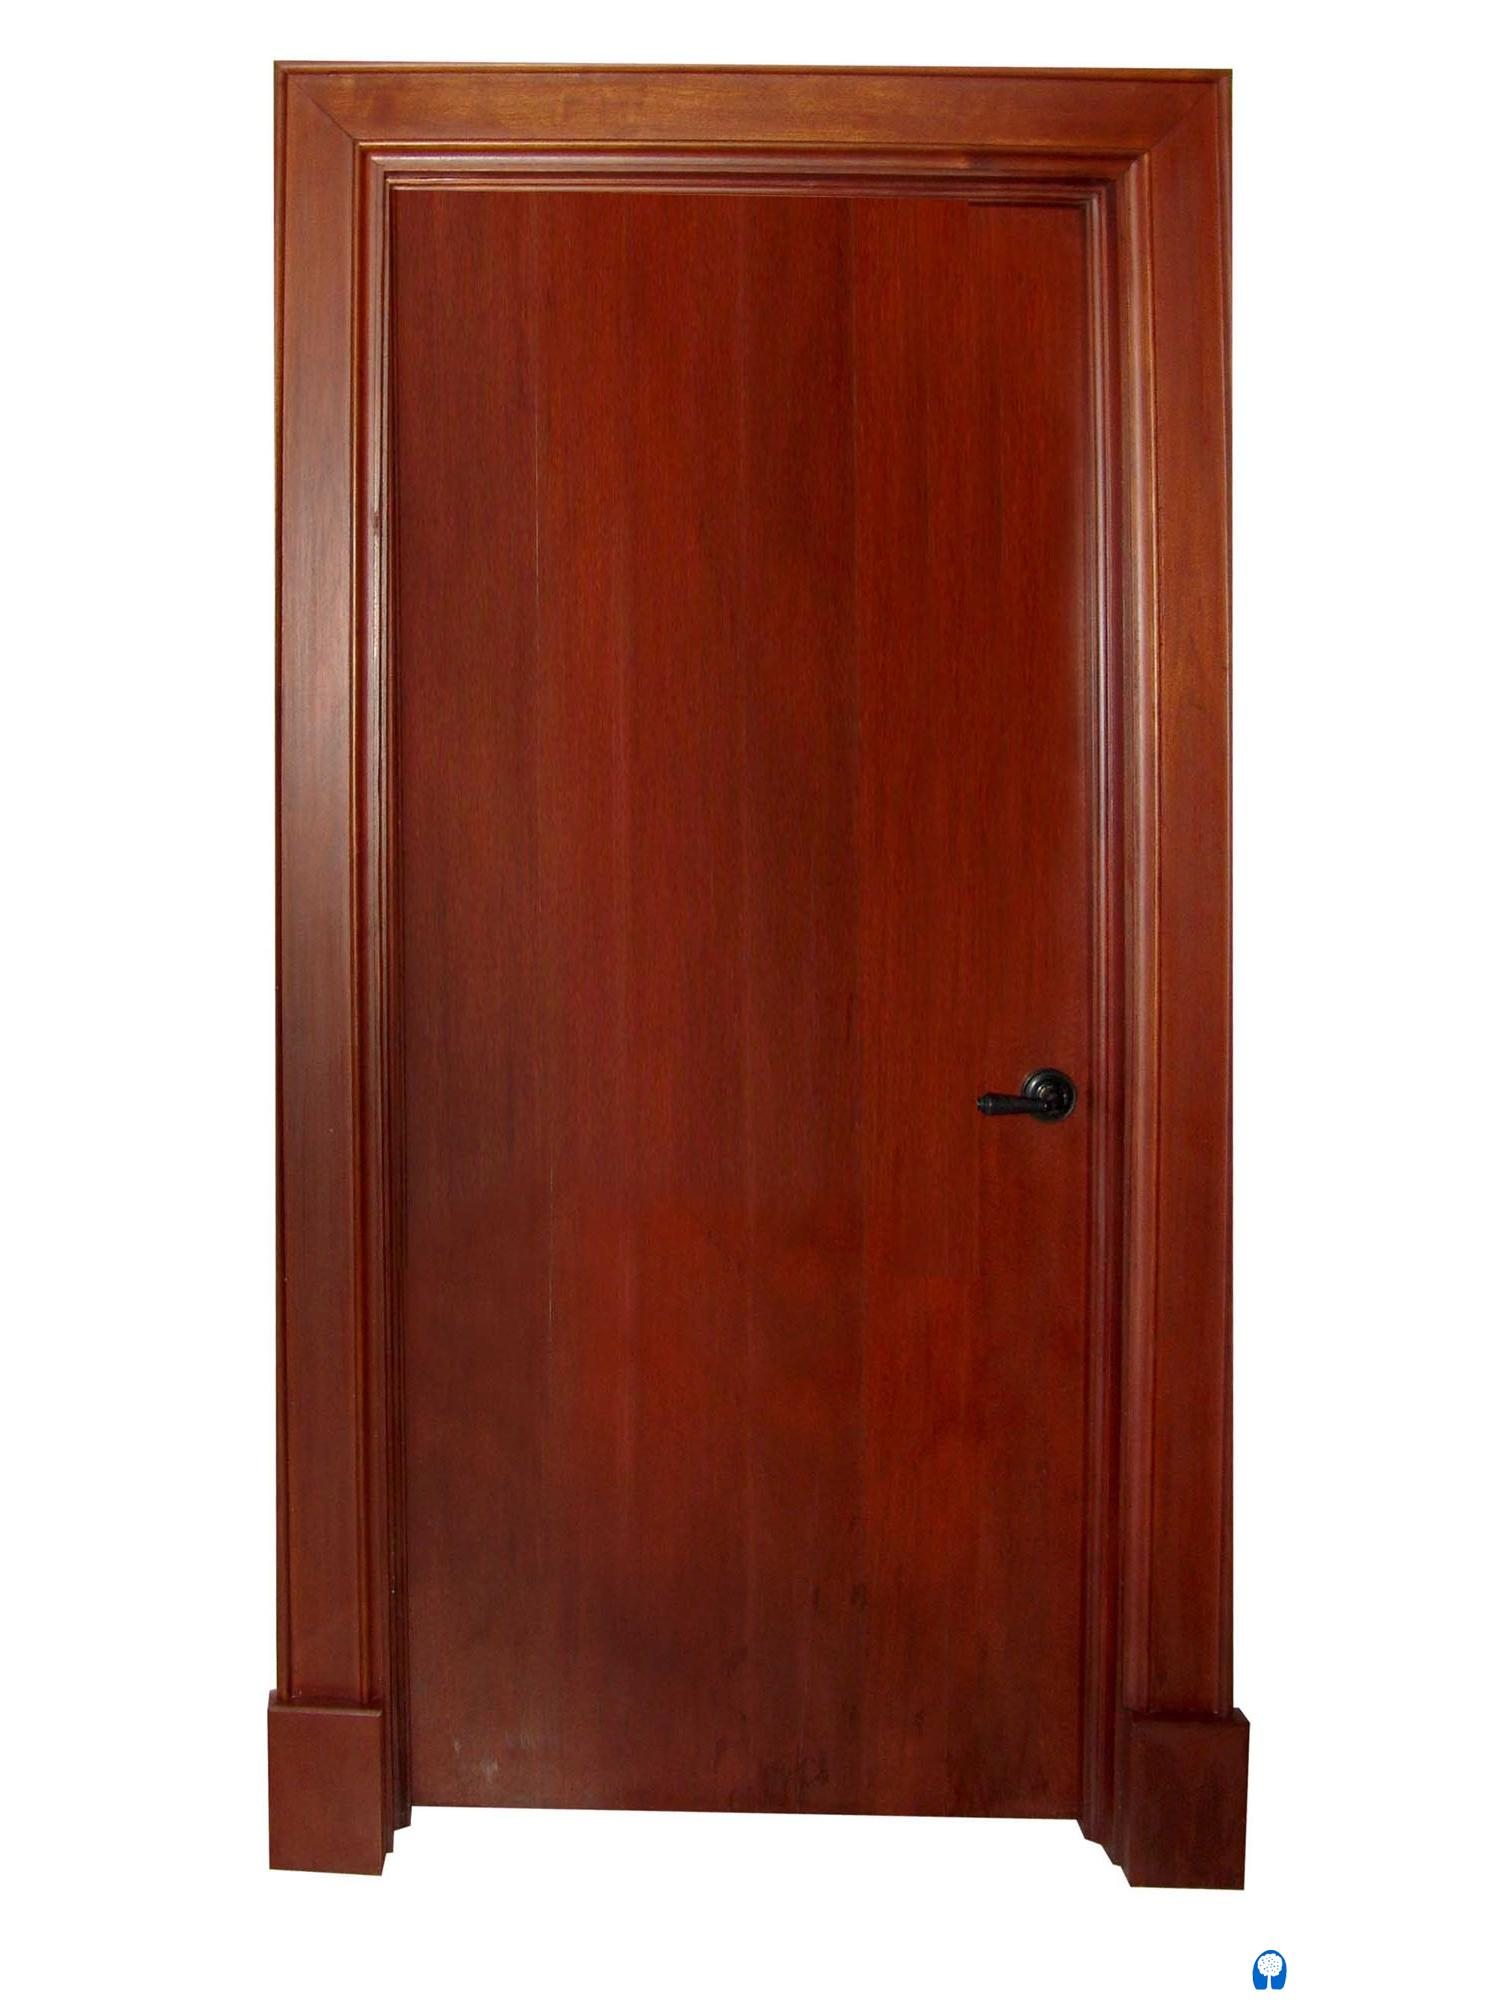 Flush mahogany mahogany interior doors sabana windows for Mahogany interior doors